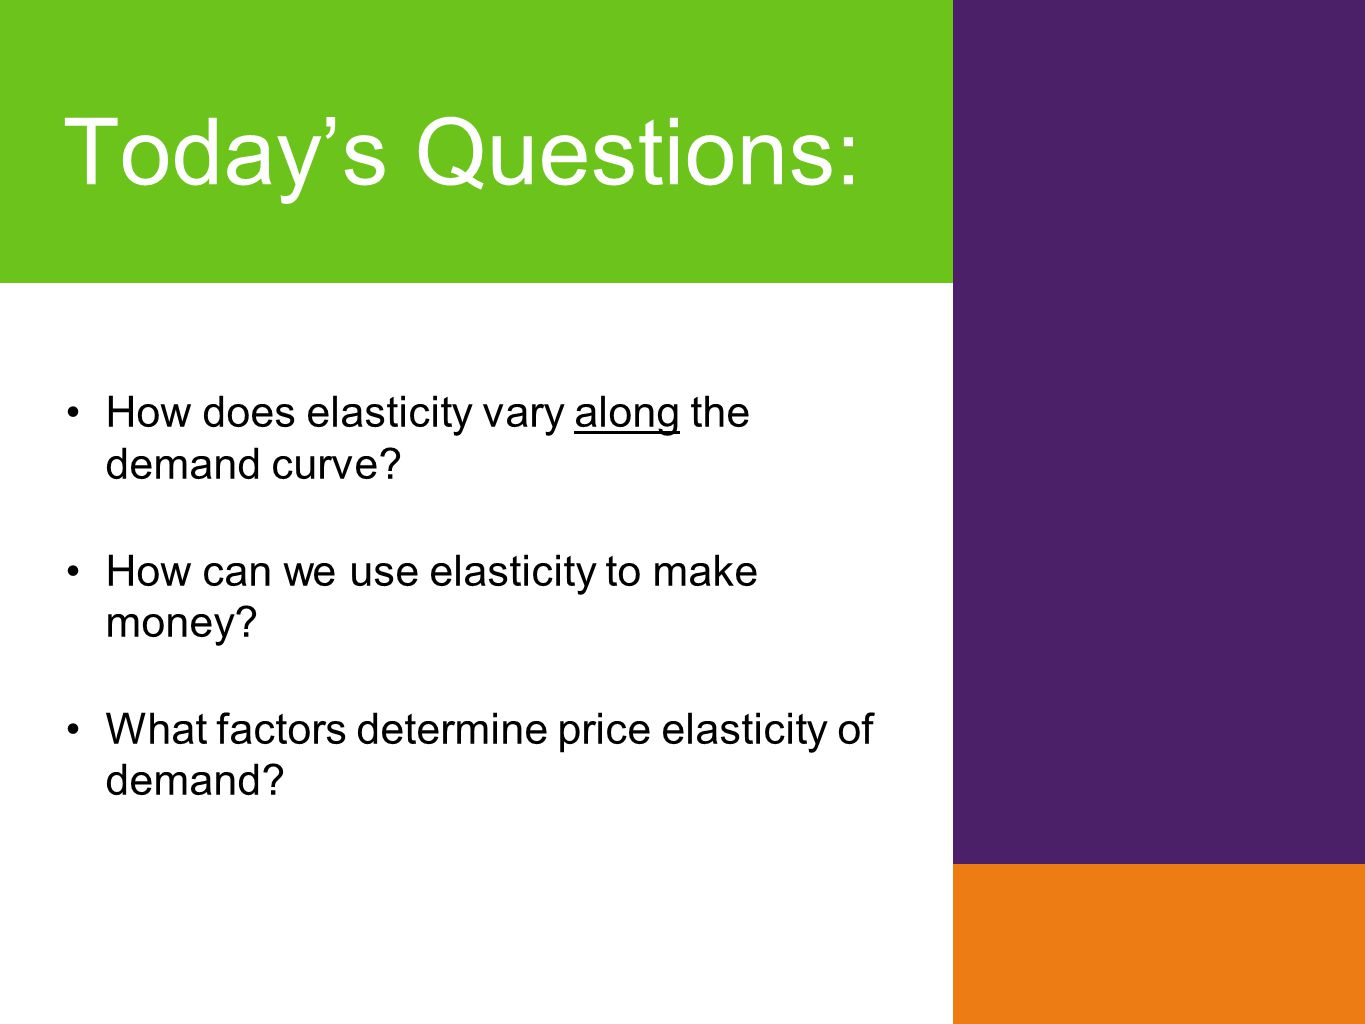 Today's Questions: How does elasticity vary along the demand curve